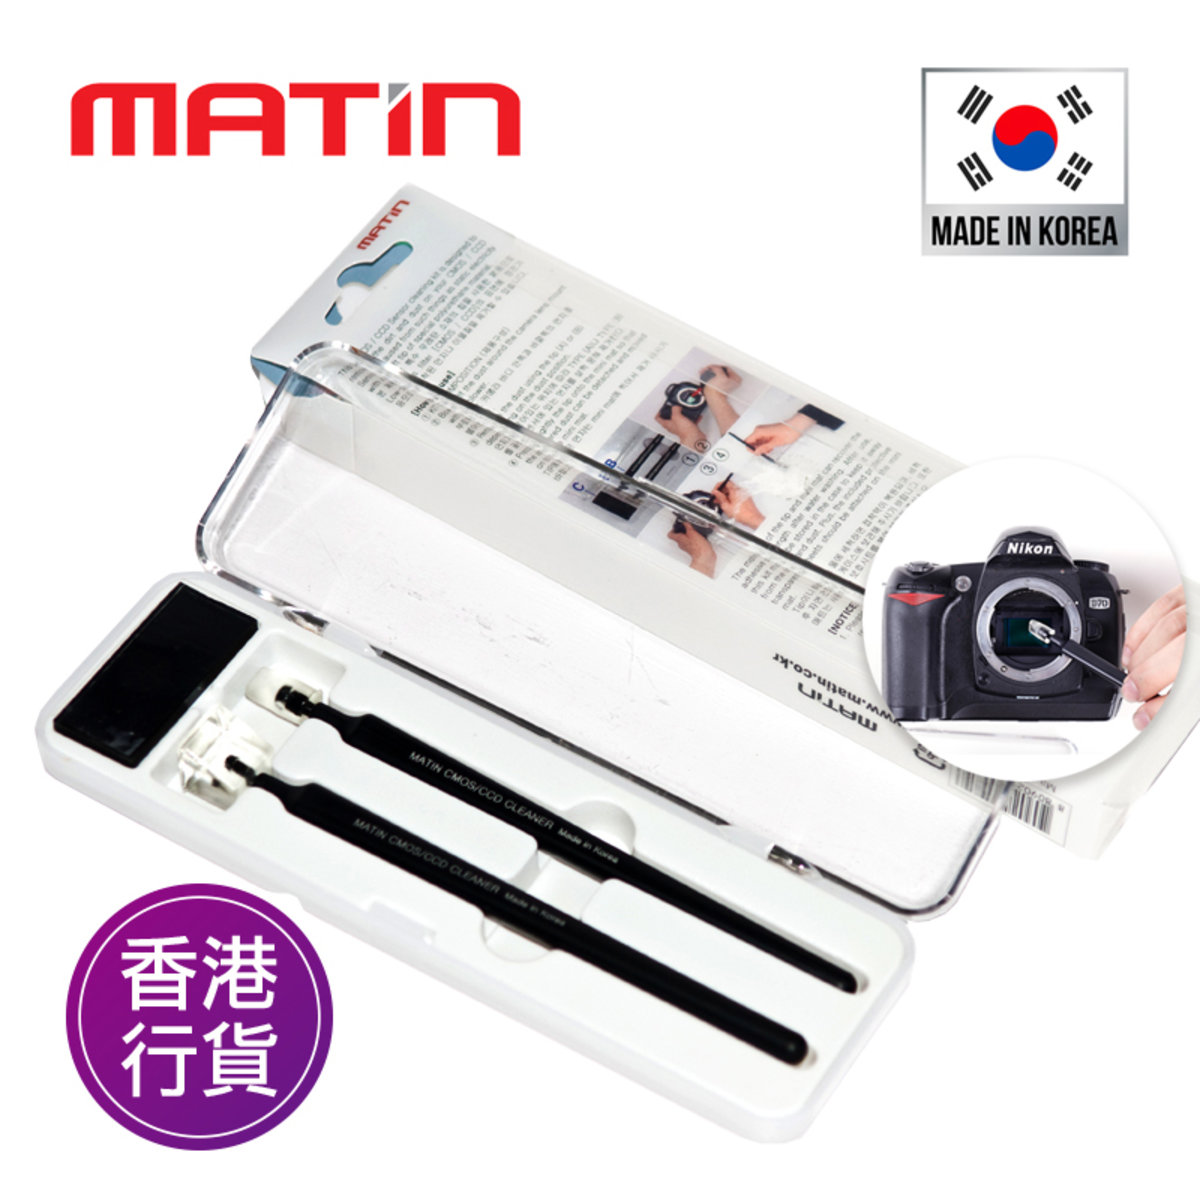 M-6361 CMOS CCD Sensor SLR digital camera Cleaning Kit